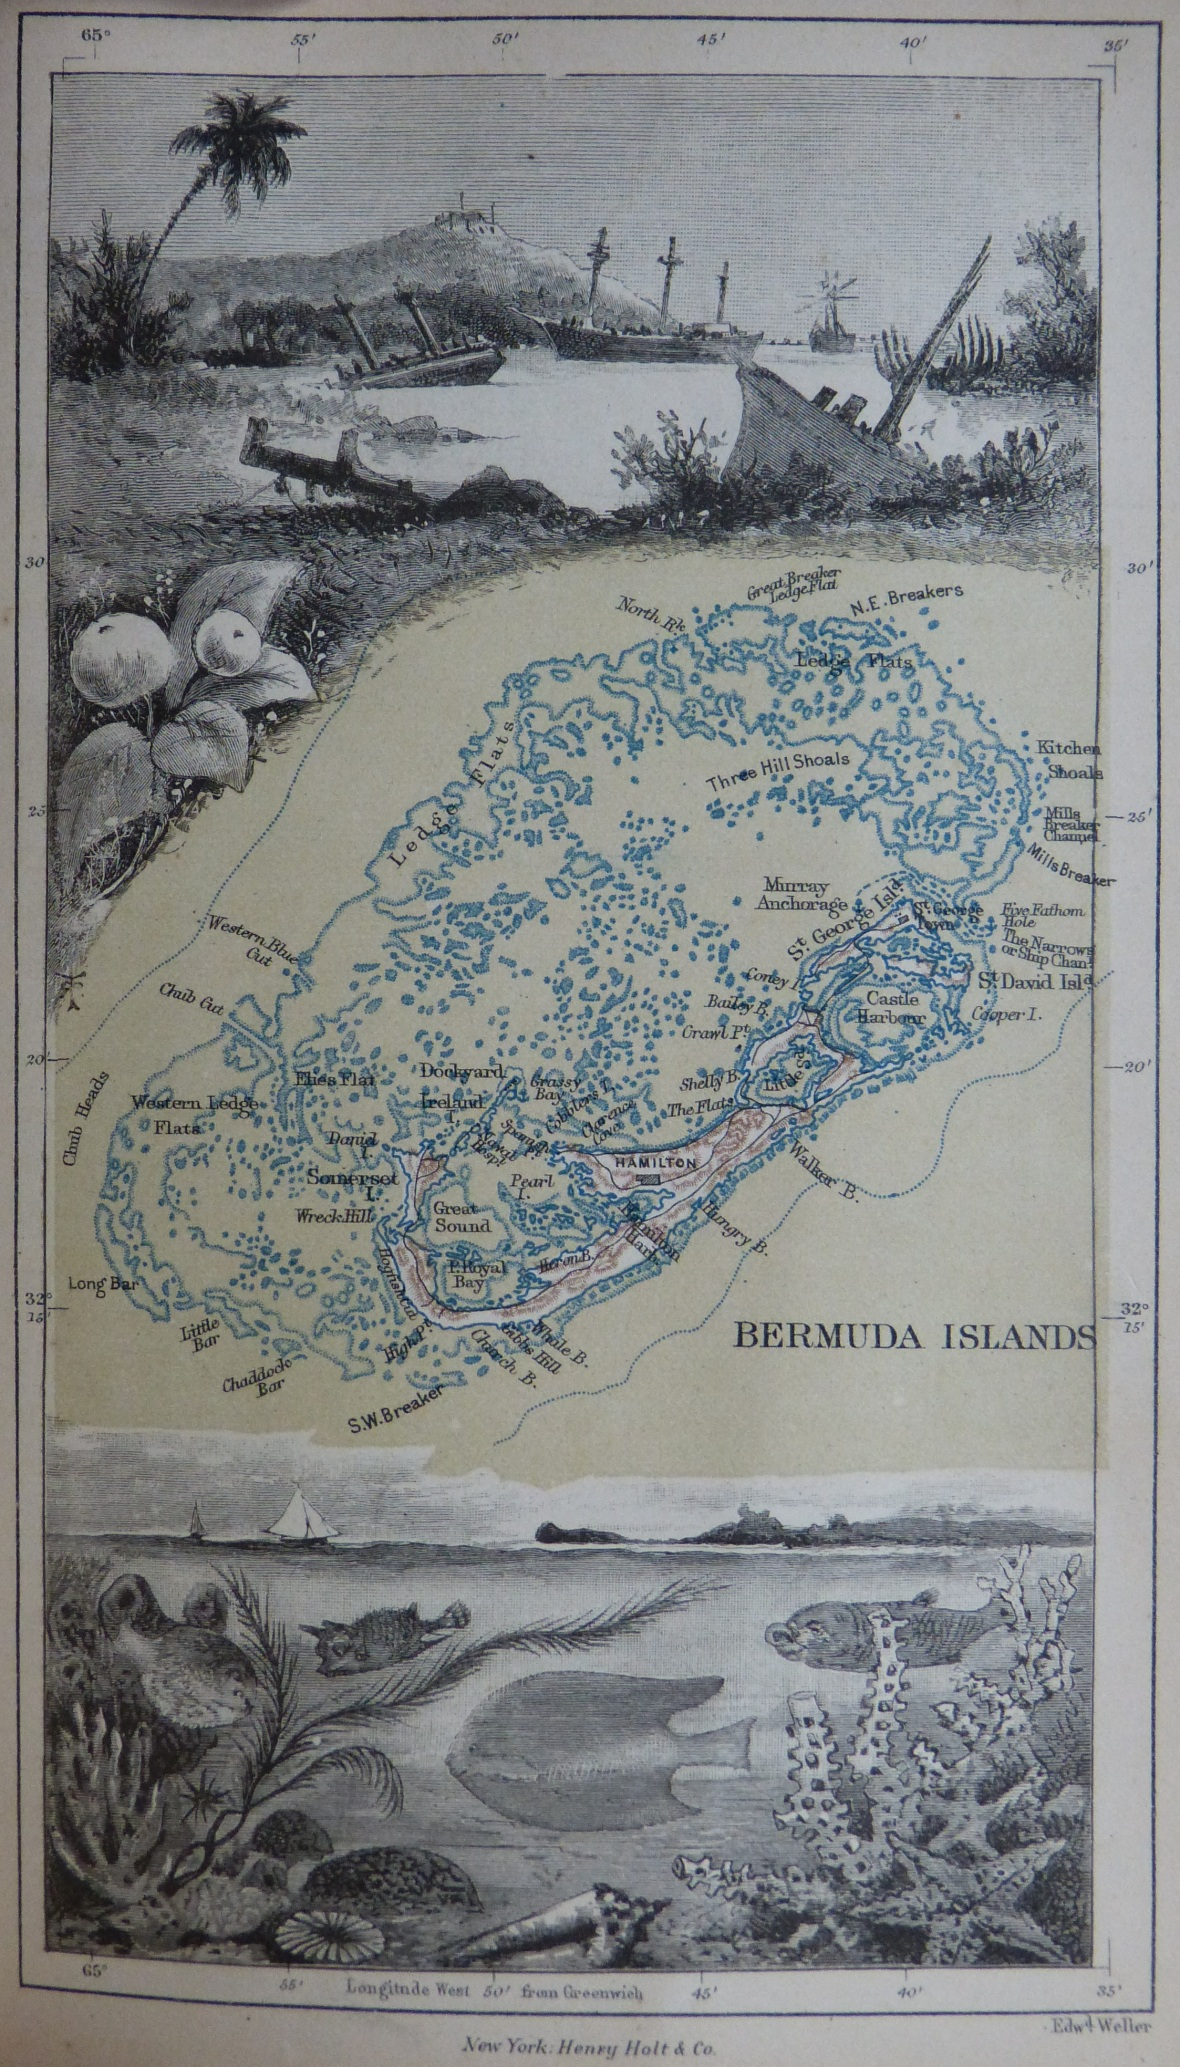 1885_Map_of_Bermuda_and_its_reefs_by_Anna_Brassey